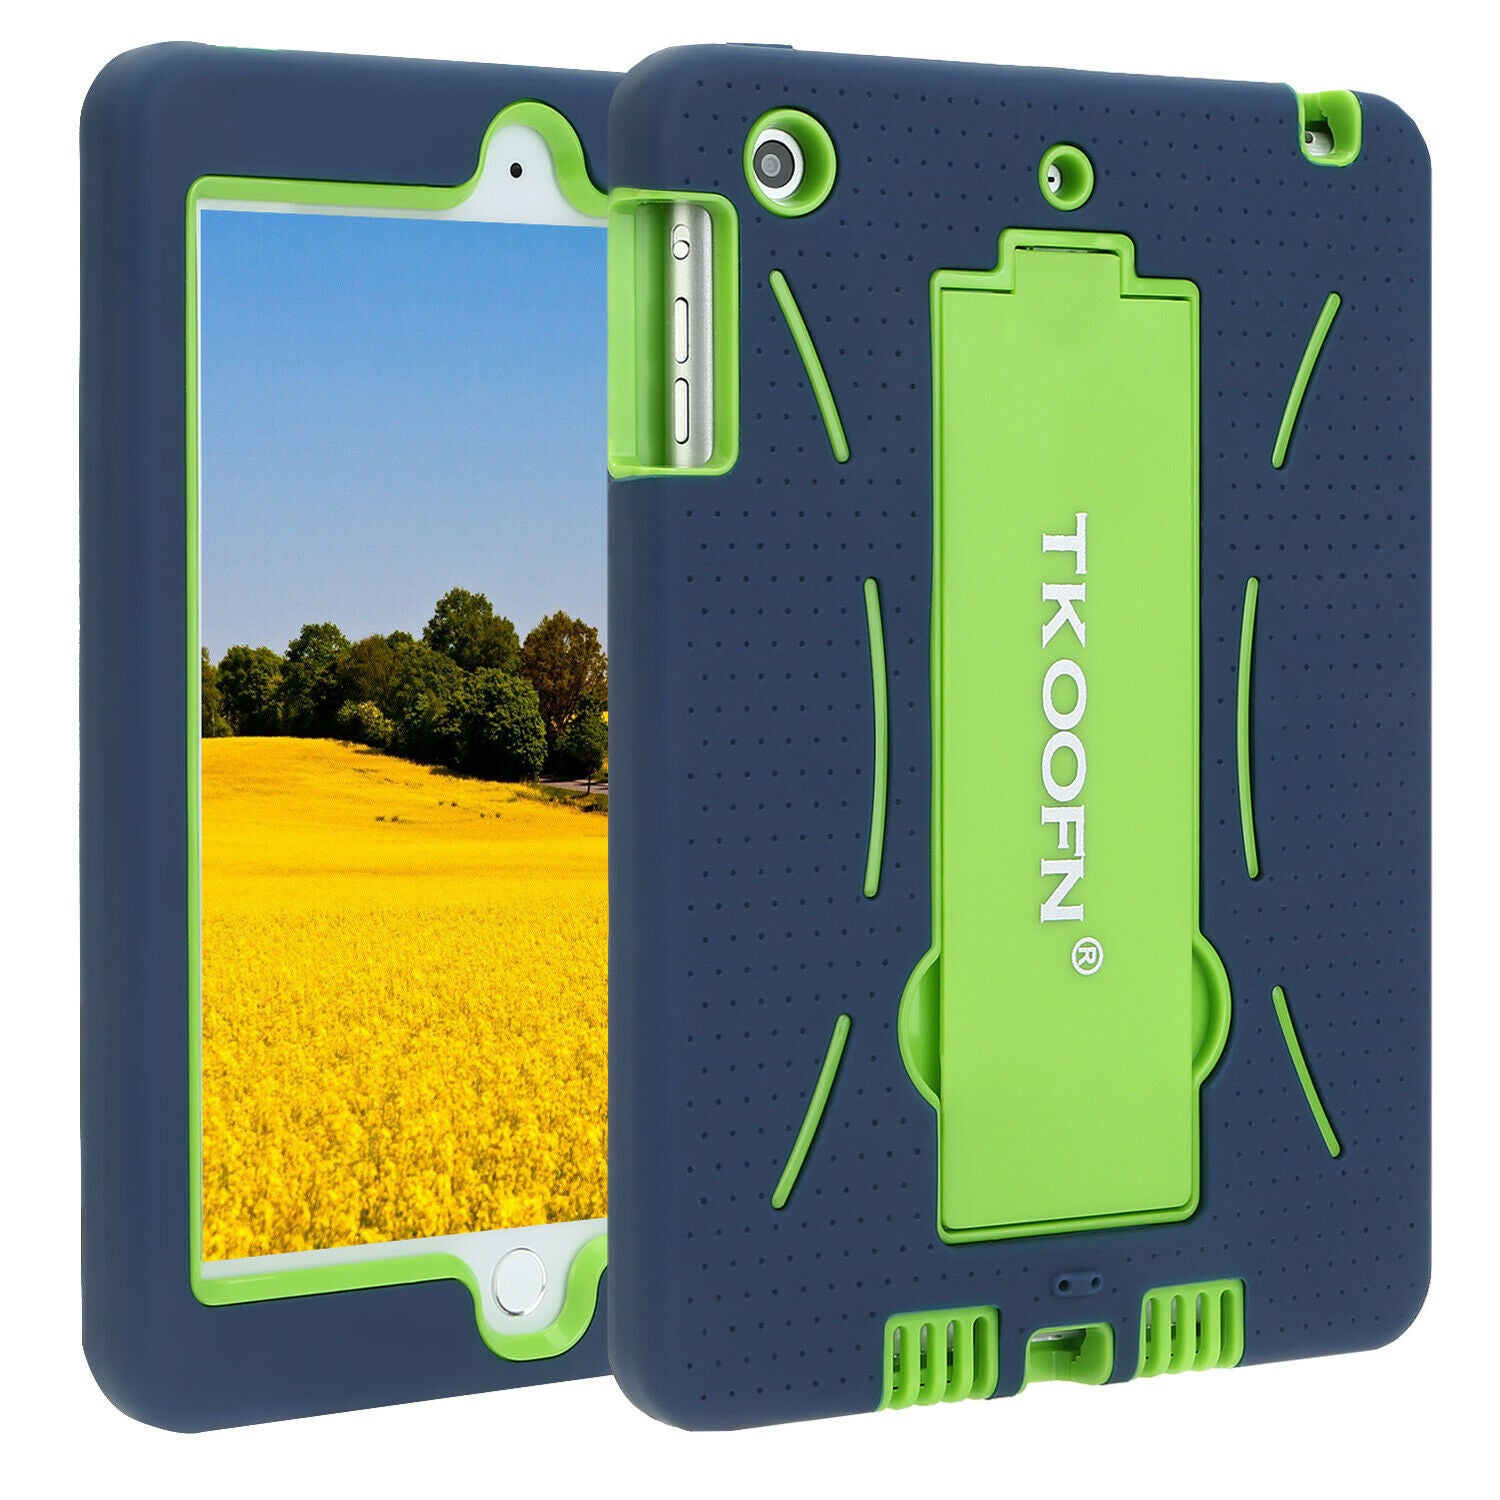 Kids Shockproof Case Heavy Duty Tough Kick Stand Cover for iPad 2 3 4